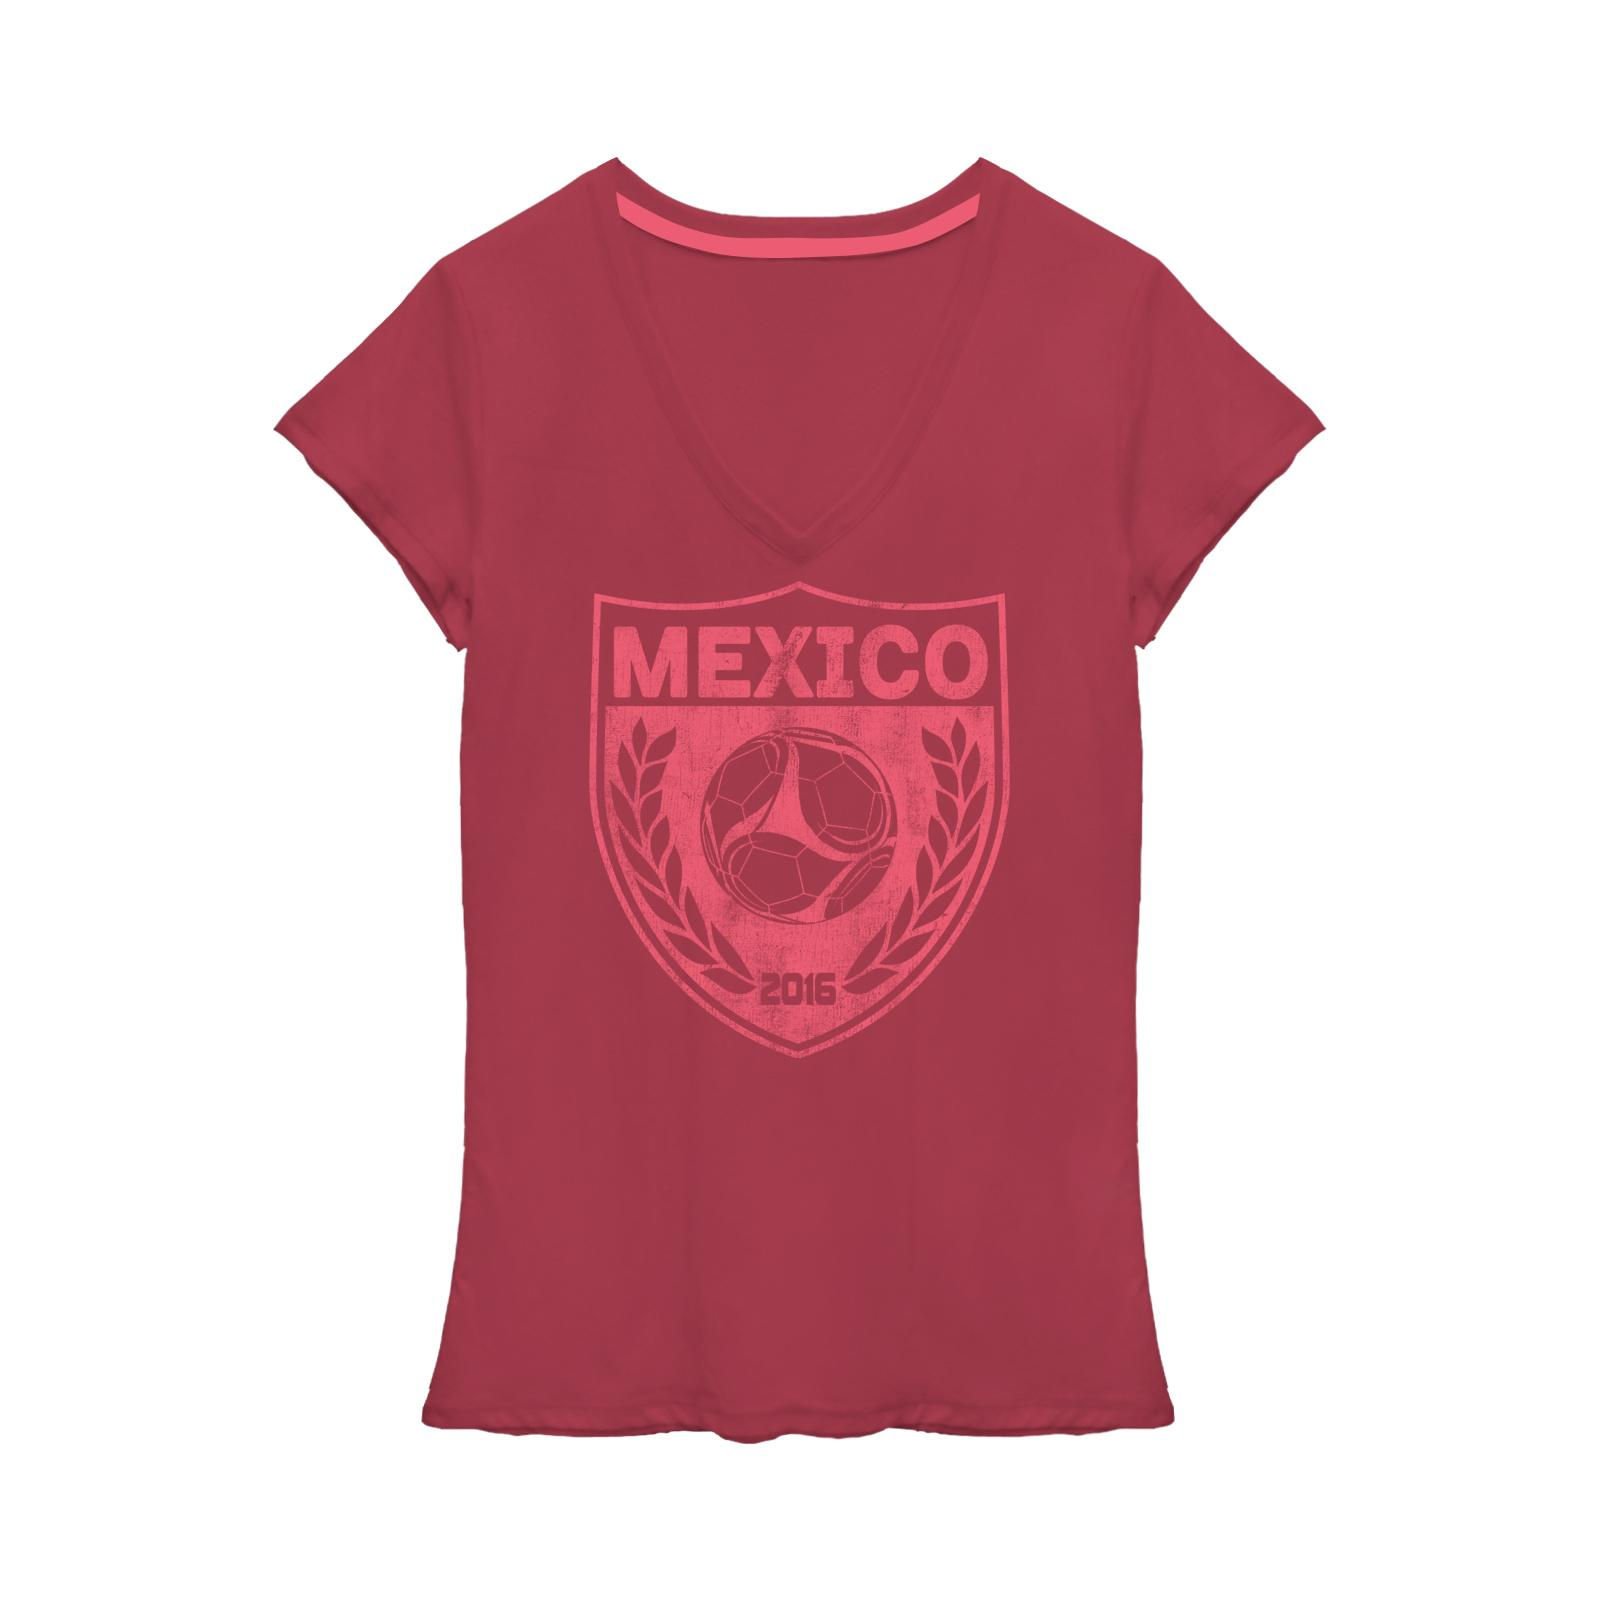 Women's Graphic T-Shirt - Mexico National Football Team